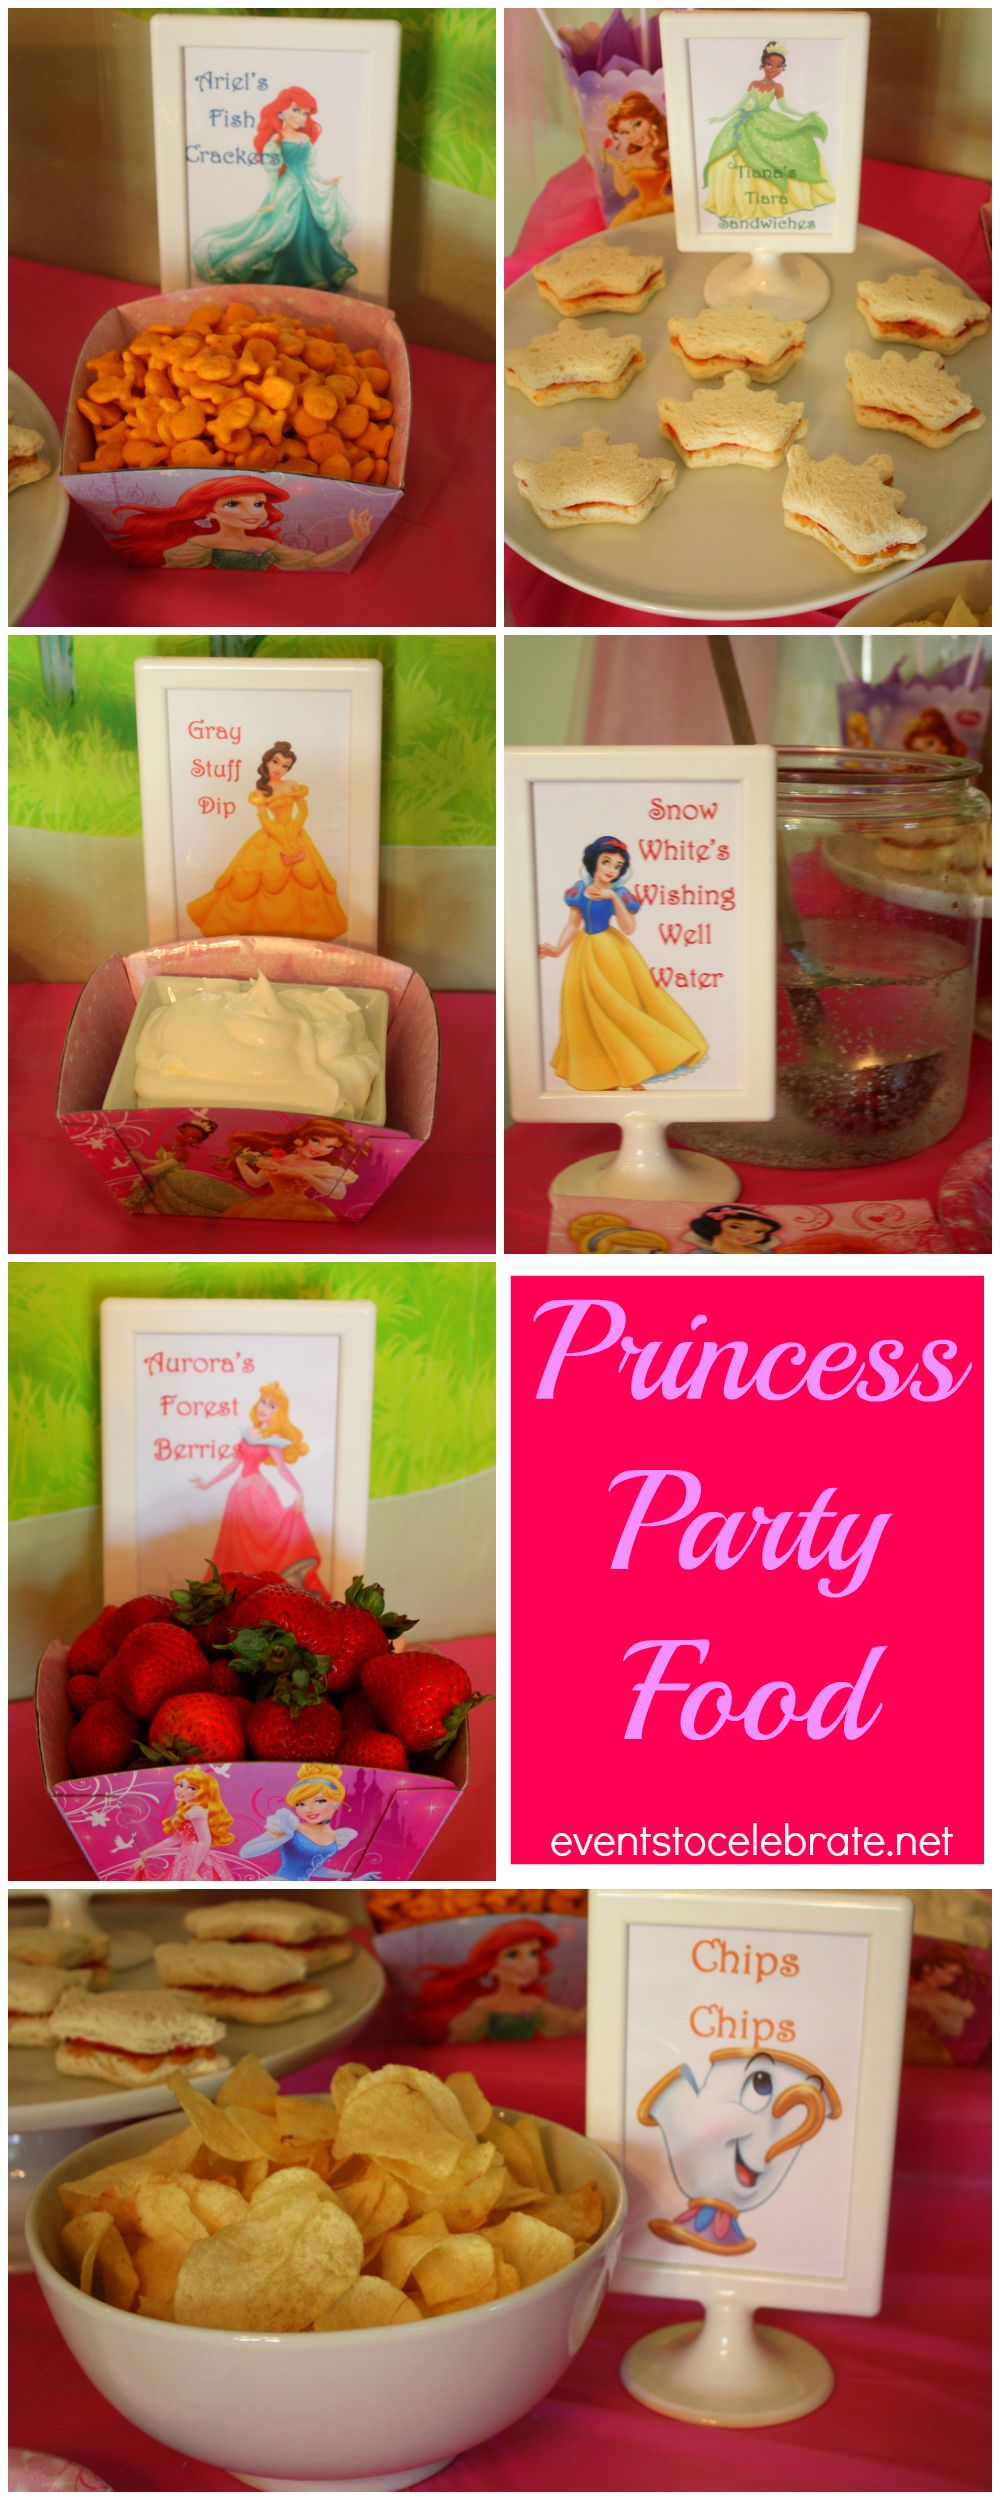 Disney Princes Party Ideas Cute Food With Free Printables Events To Celebrate